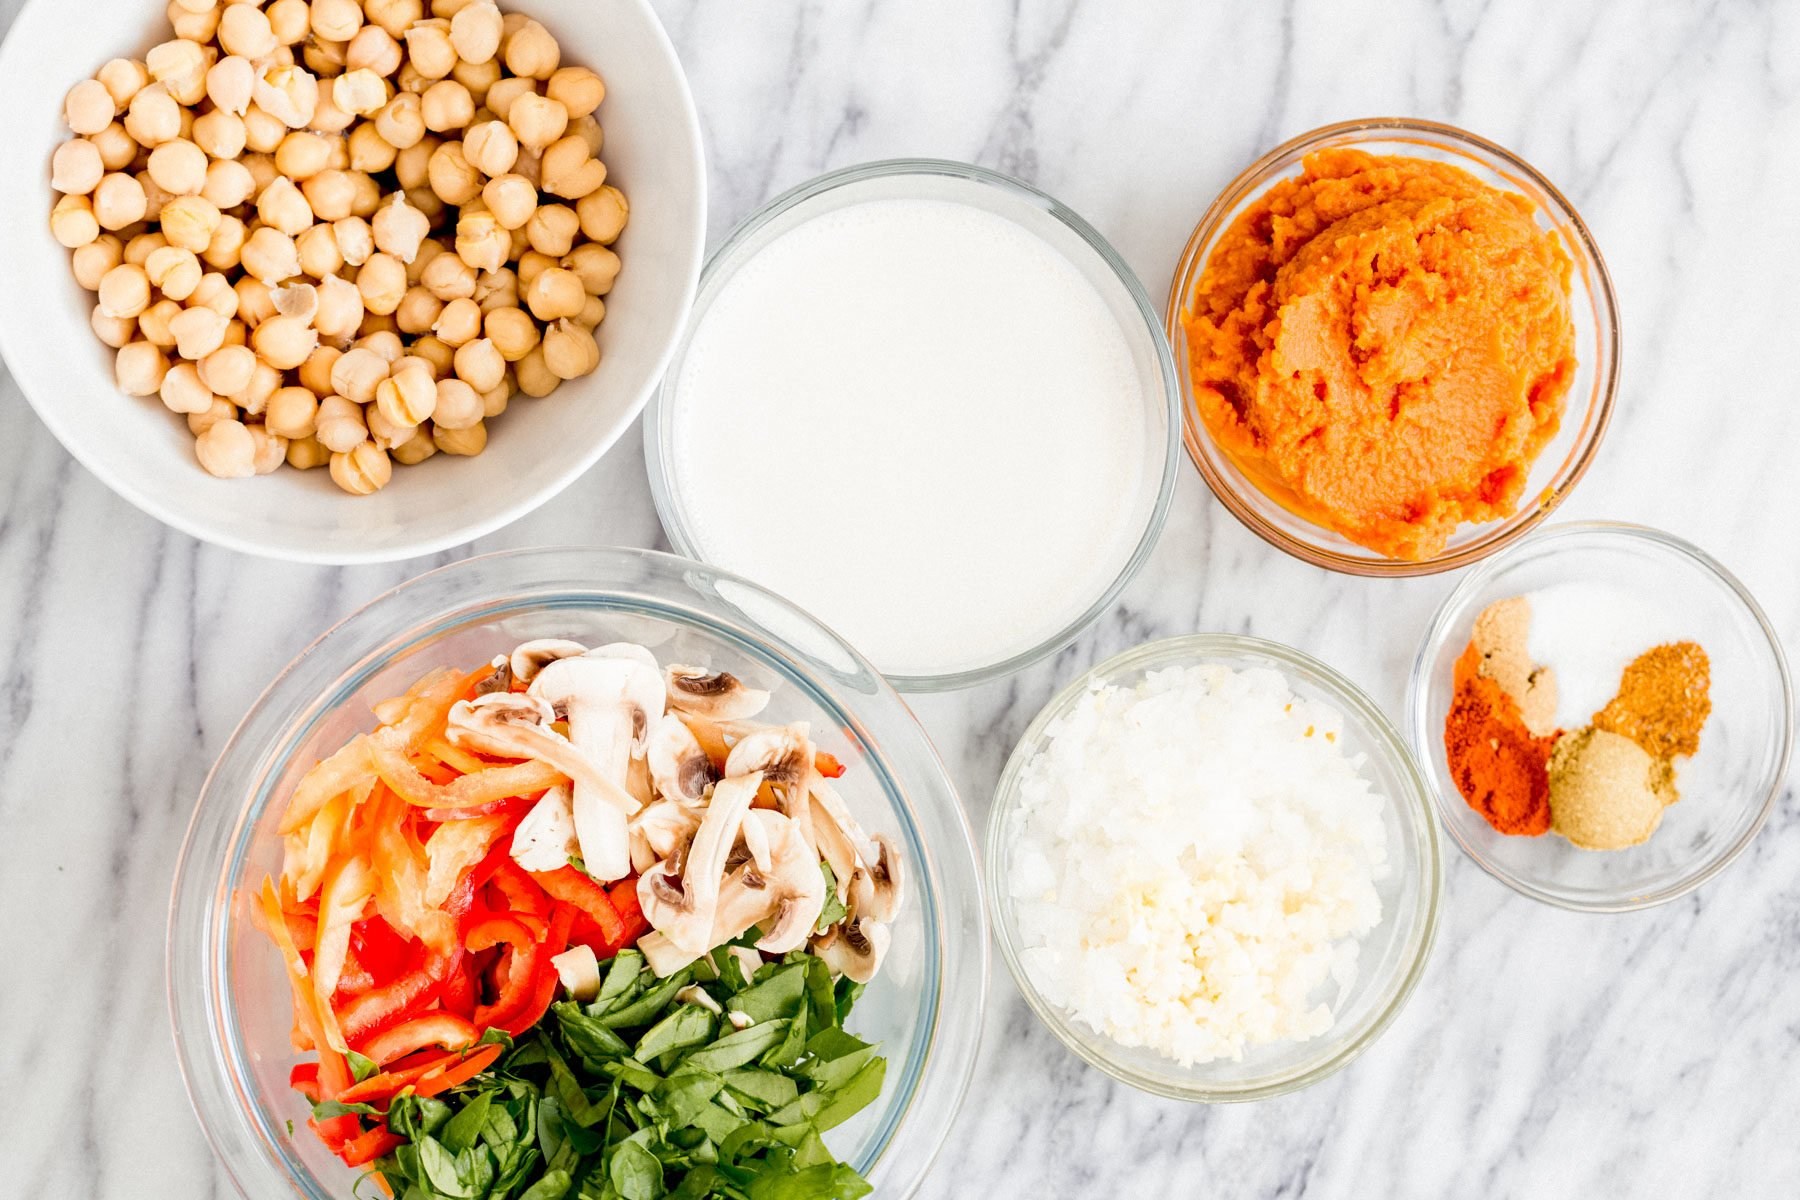 ingredients needed for making vegan chickpea pumpkin curry